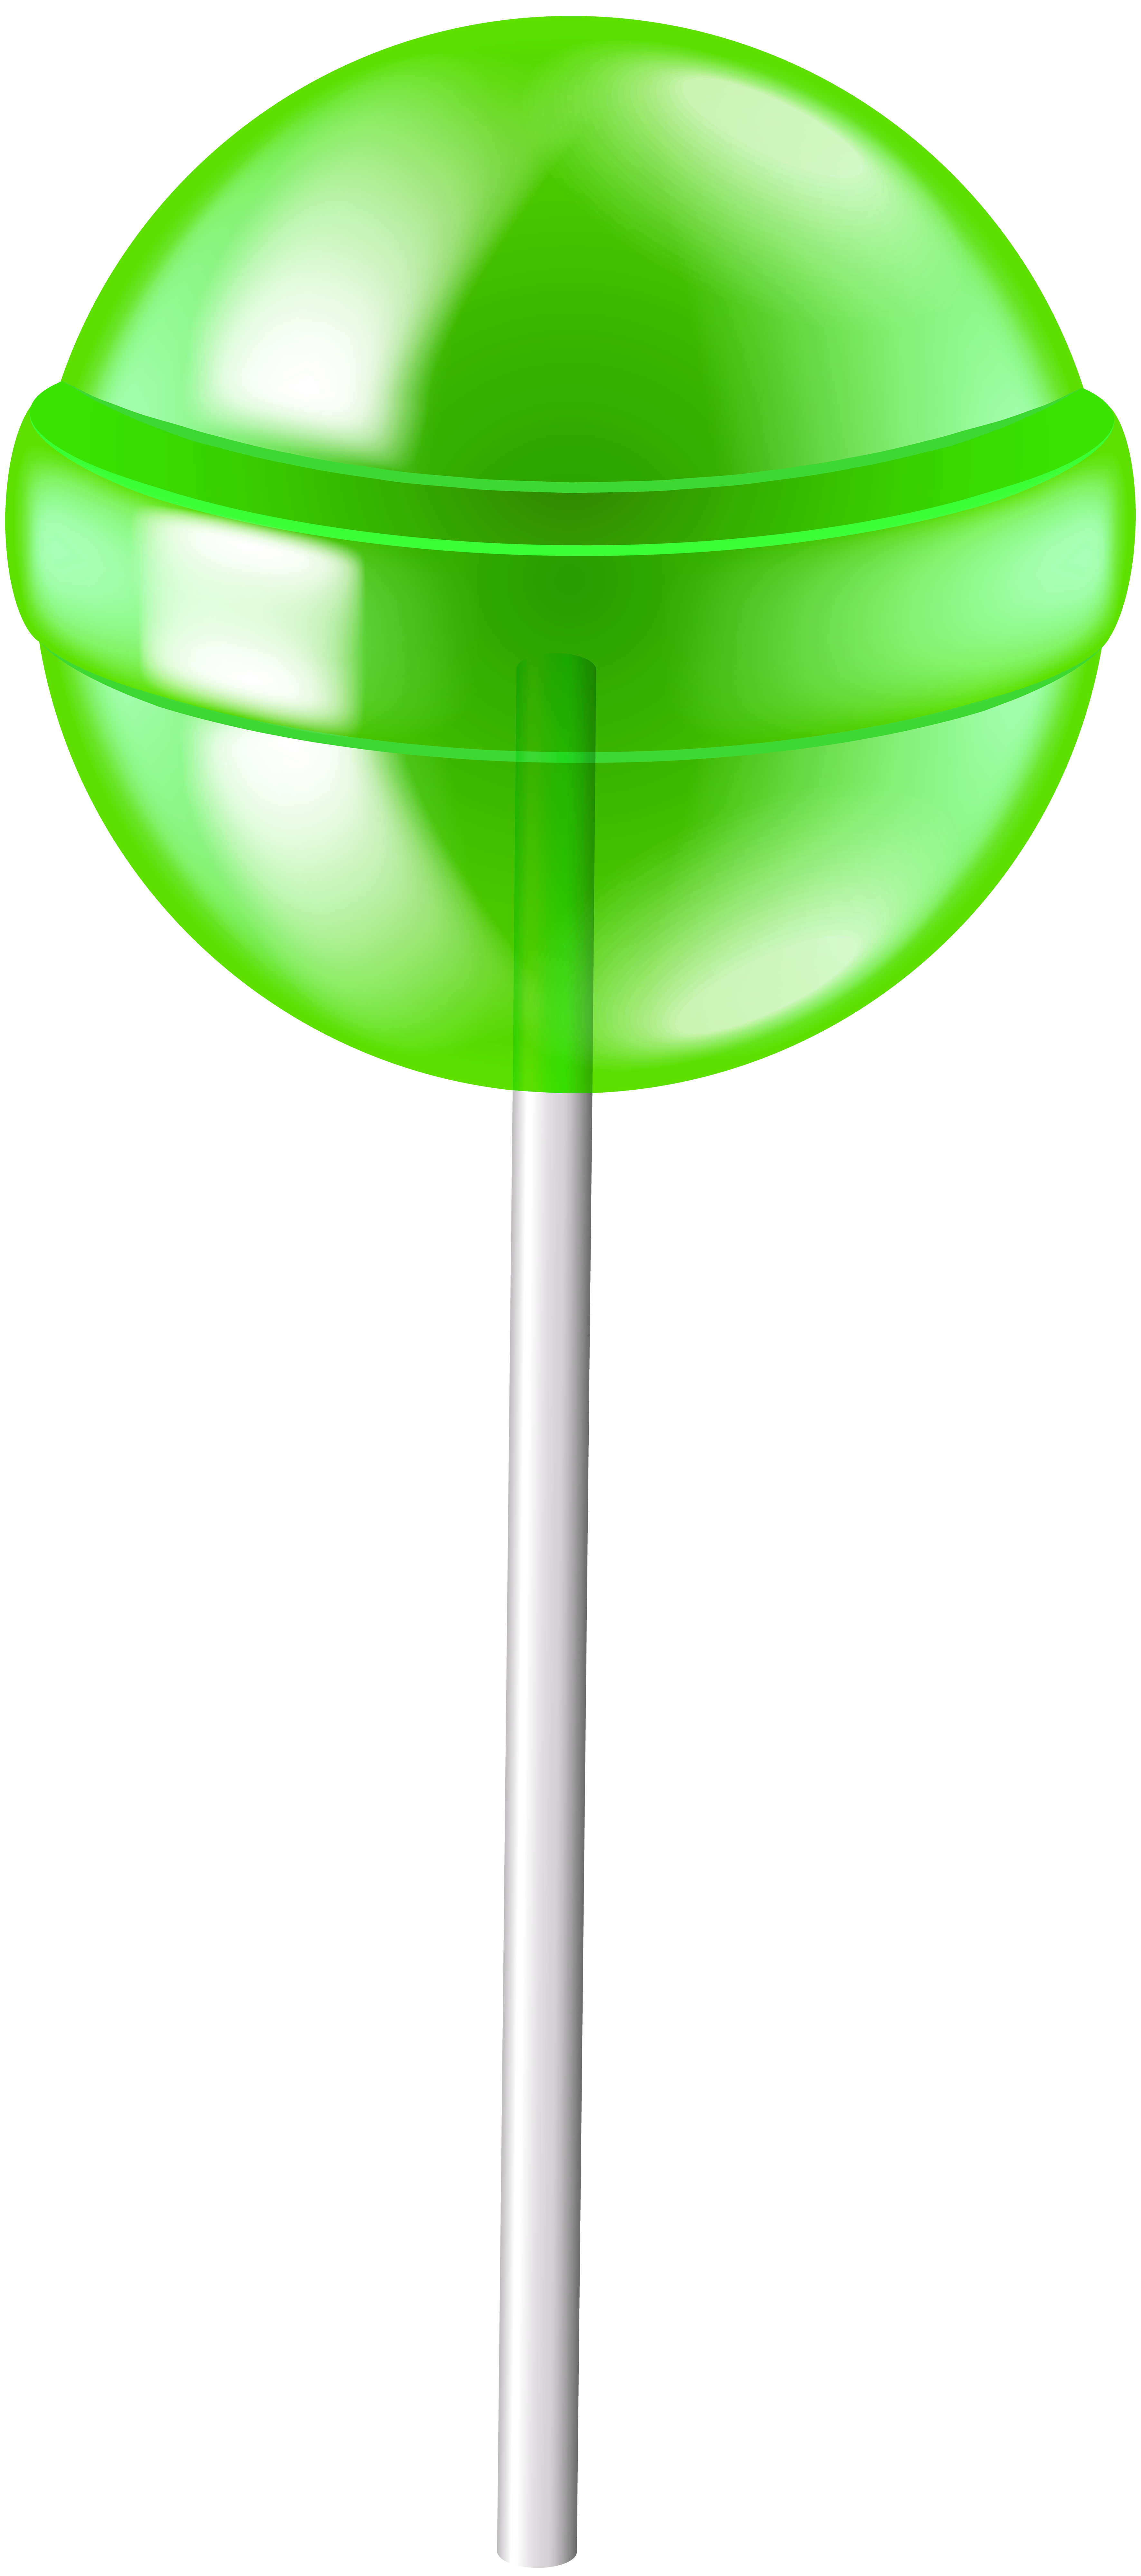 collection of transparent. Lollipop clipart green